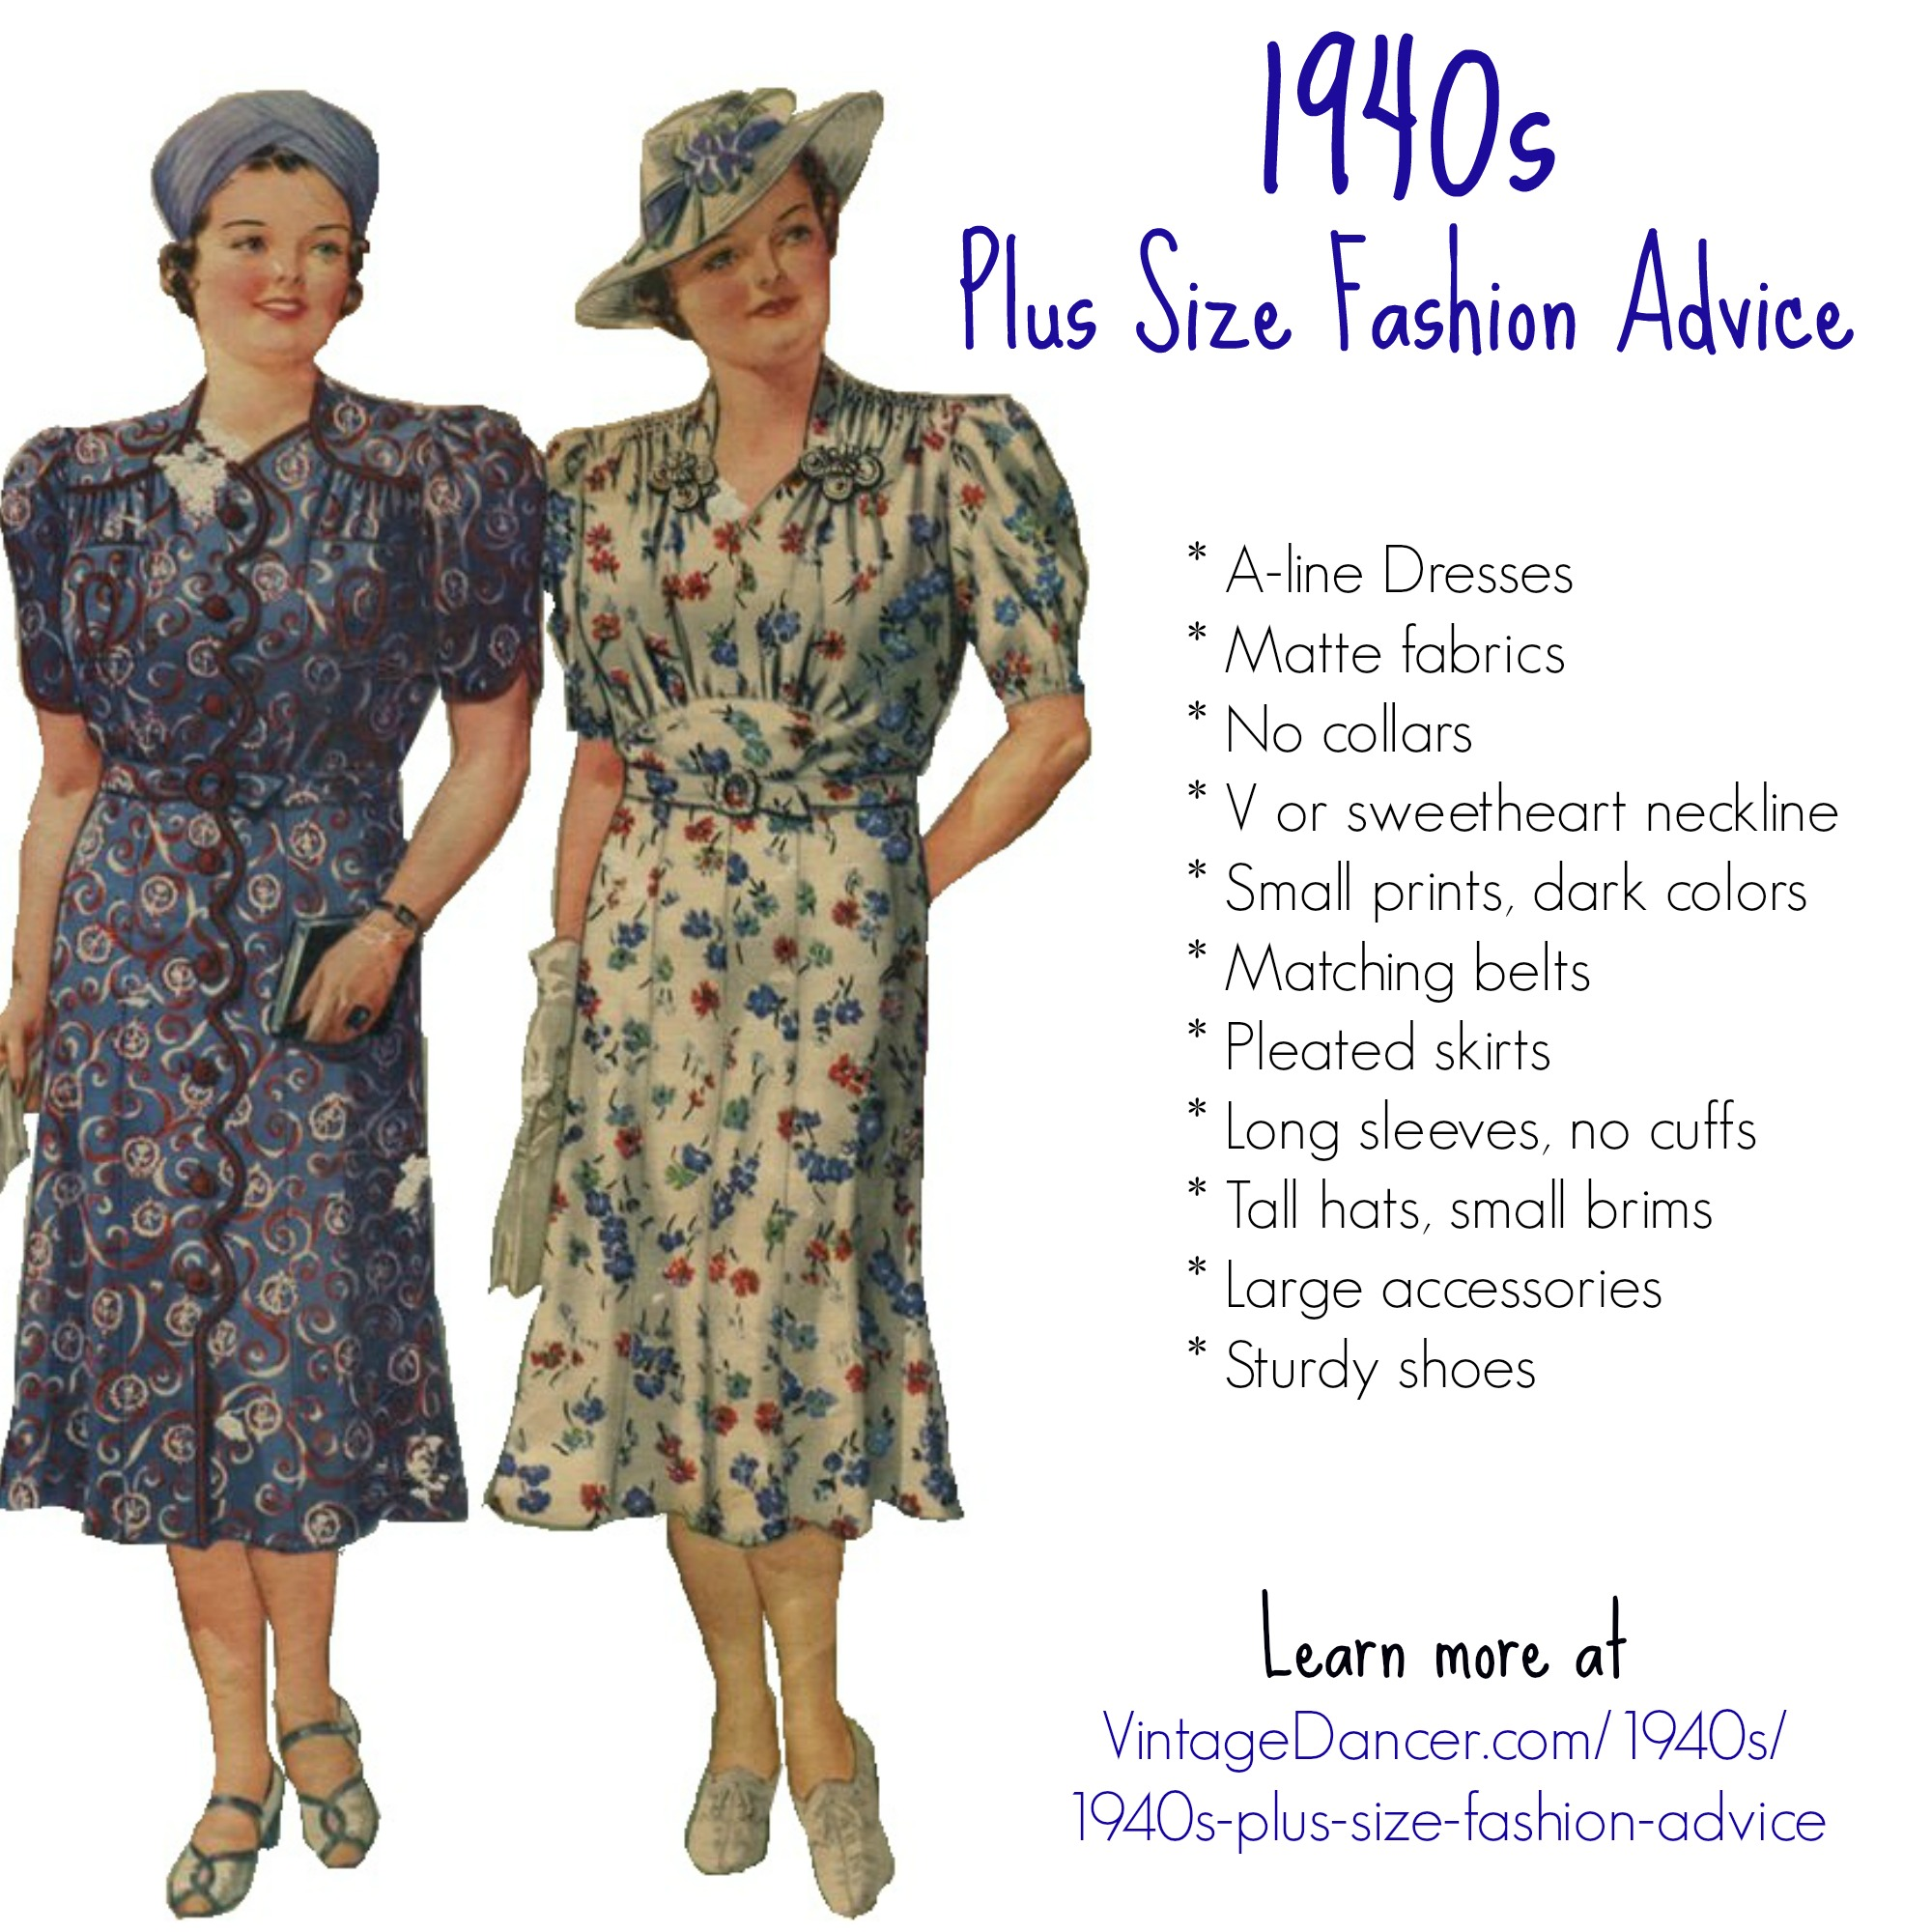 1940s Plus Size Fashion: Style Advice from 1940s to Today